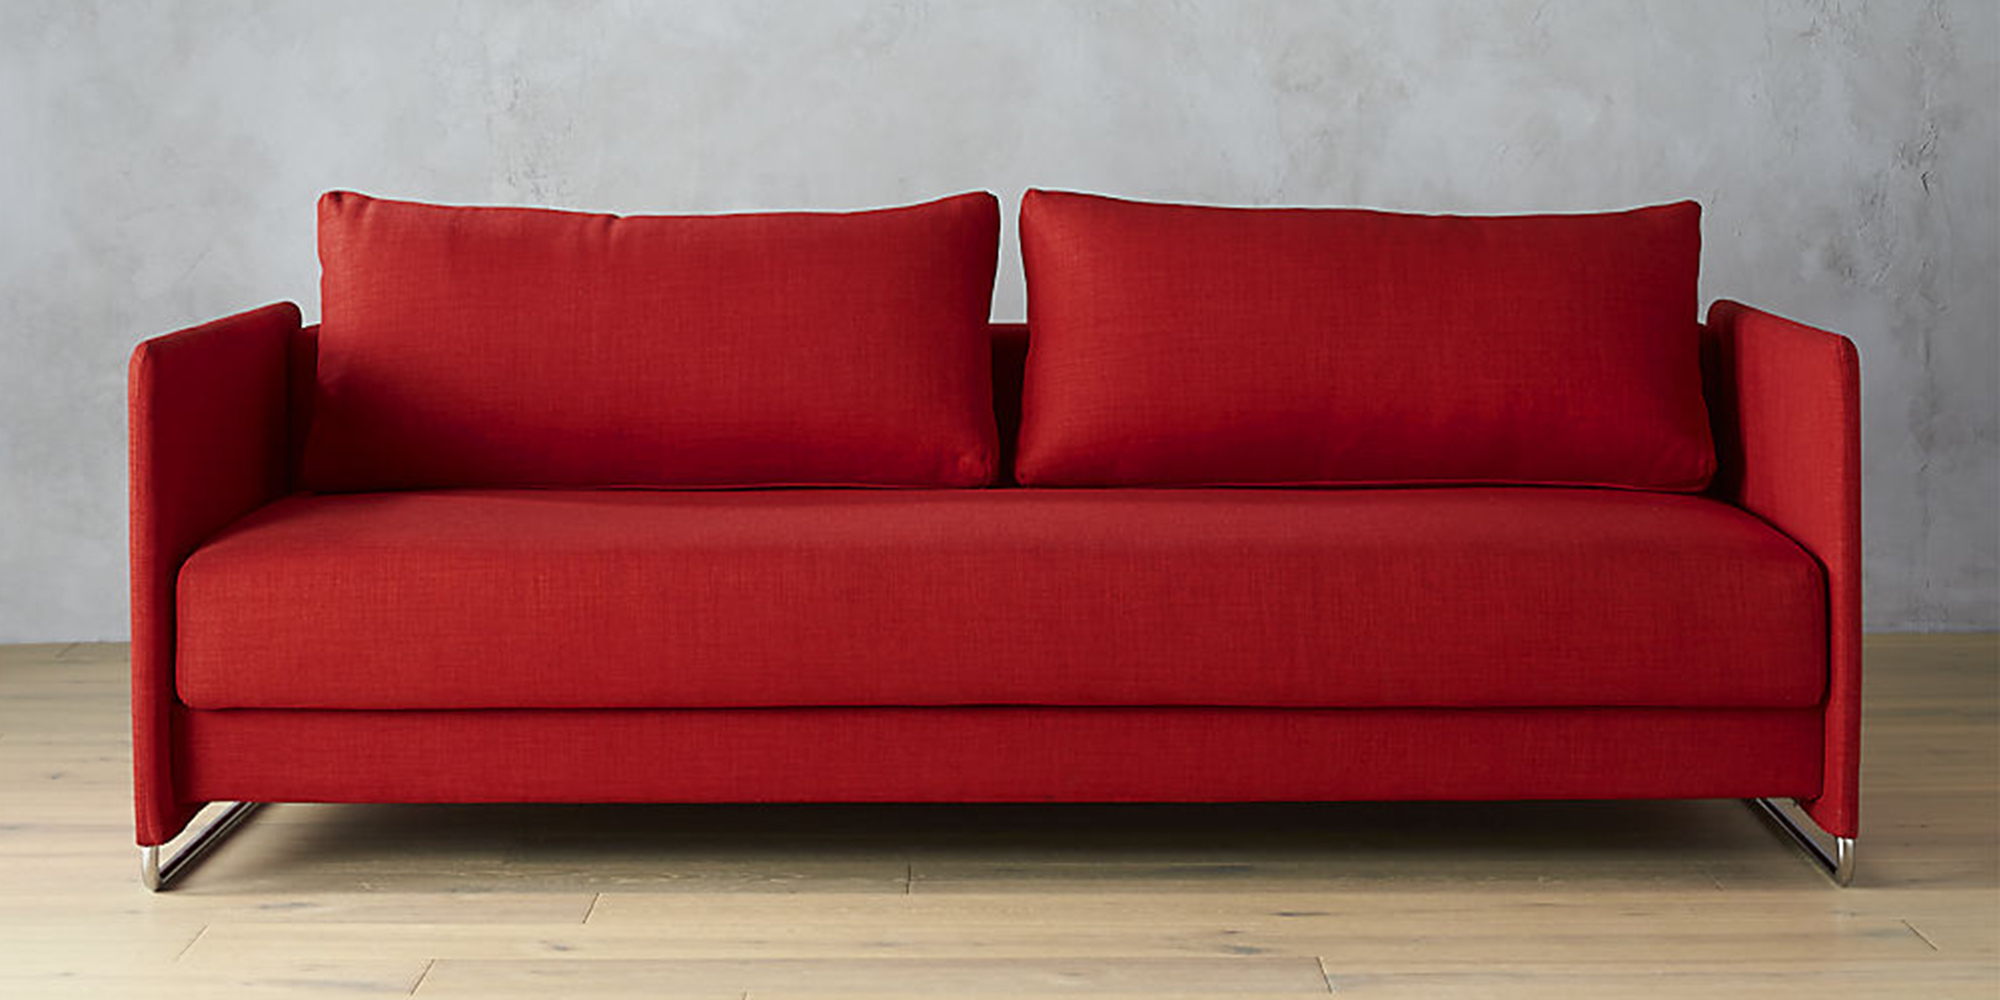 Amazon Sofa Bed With Storage